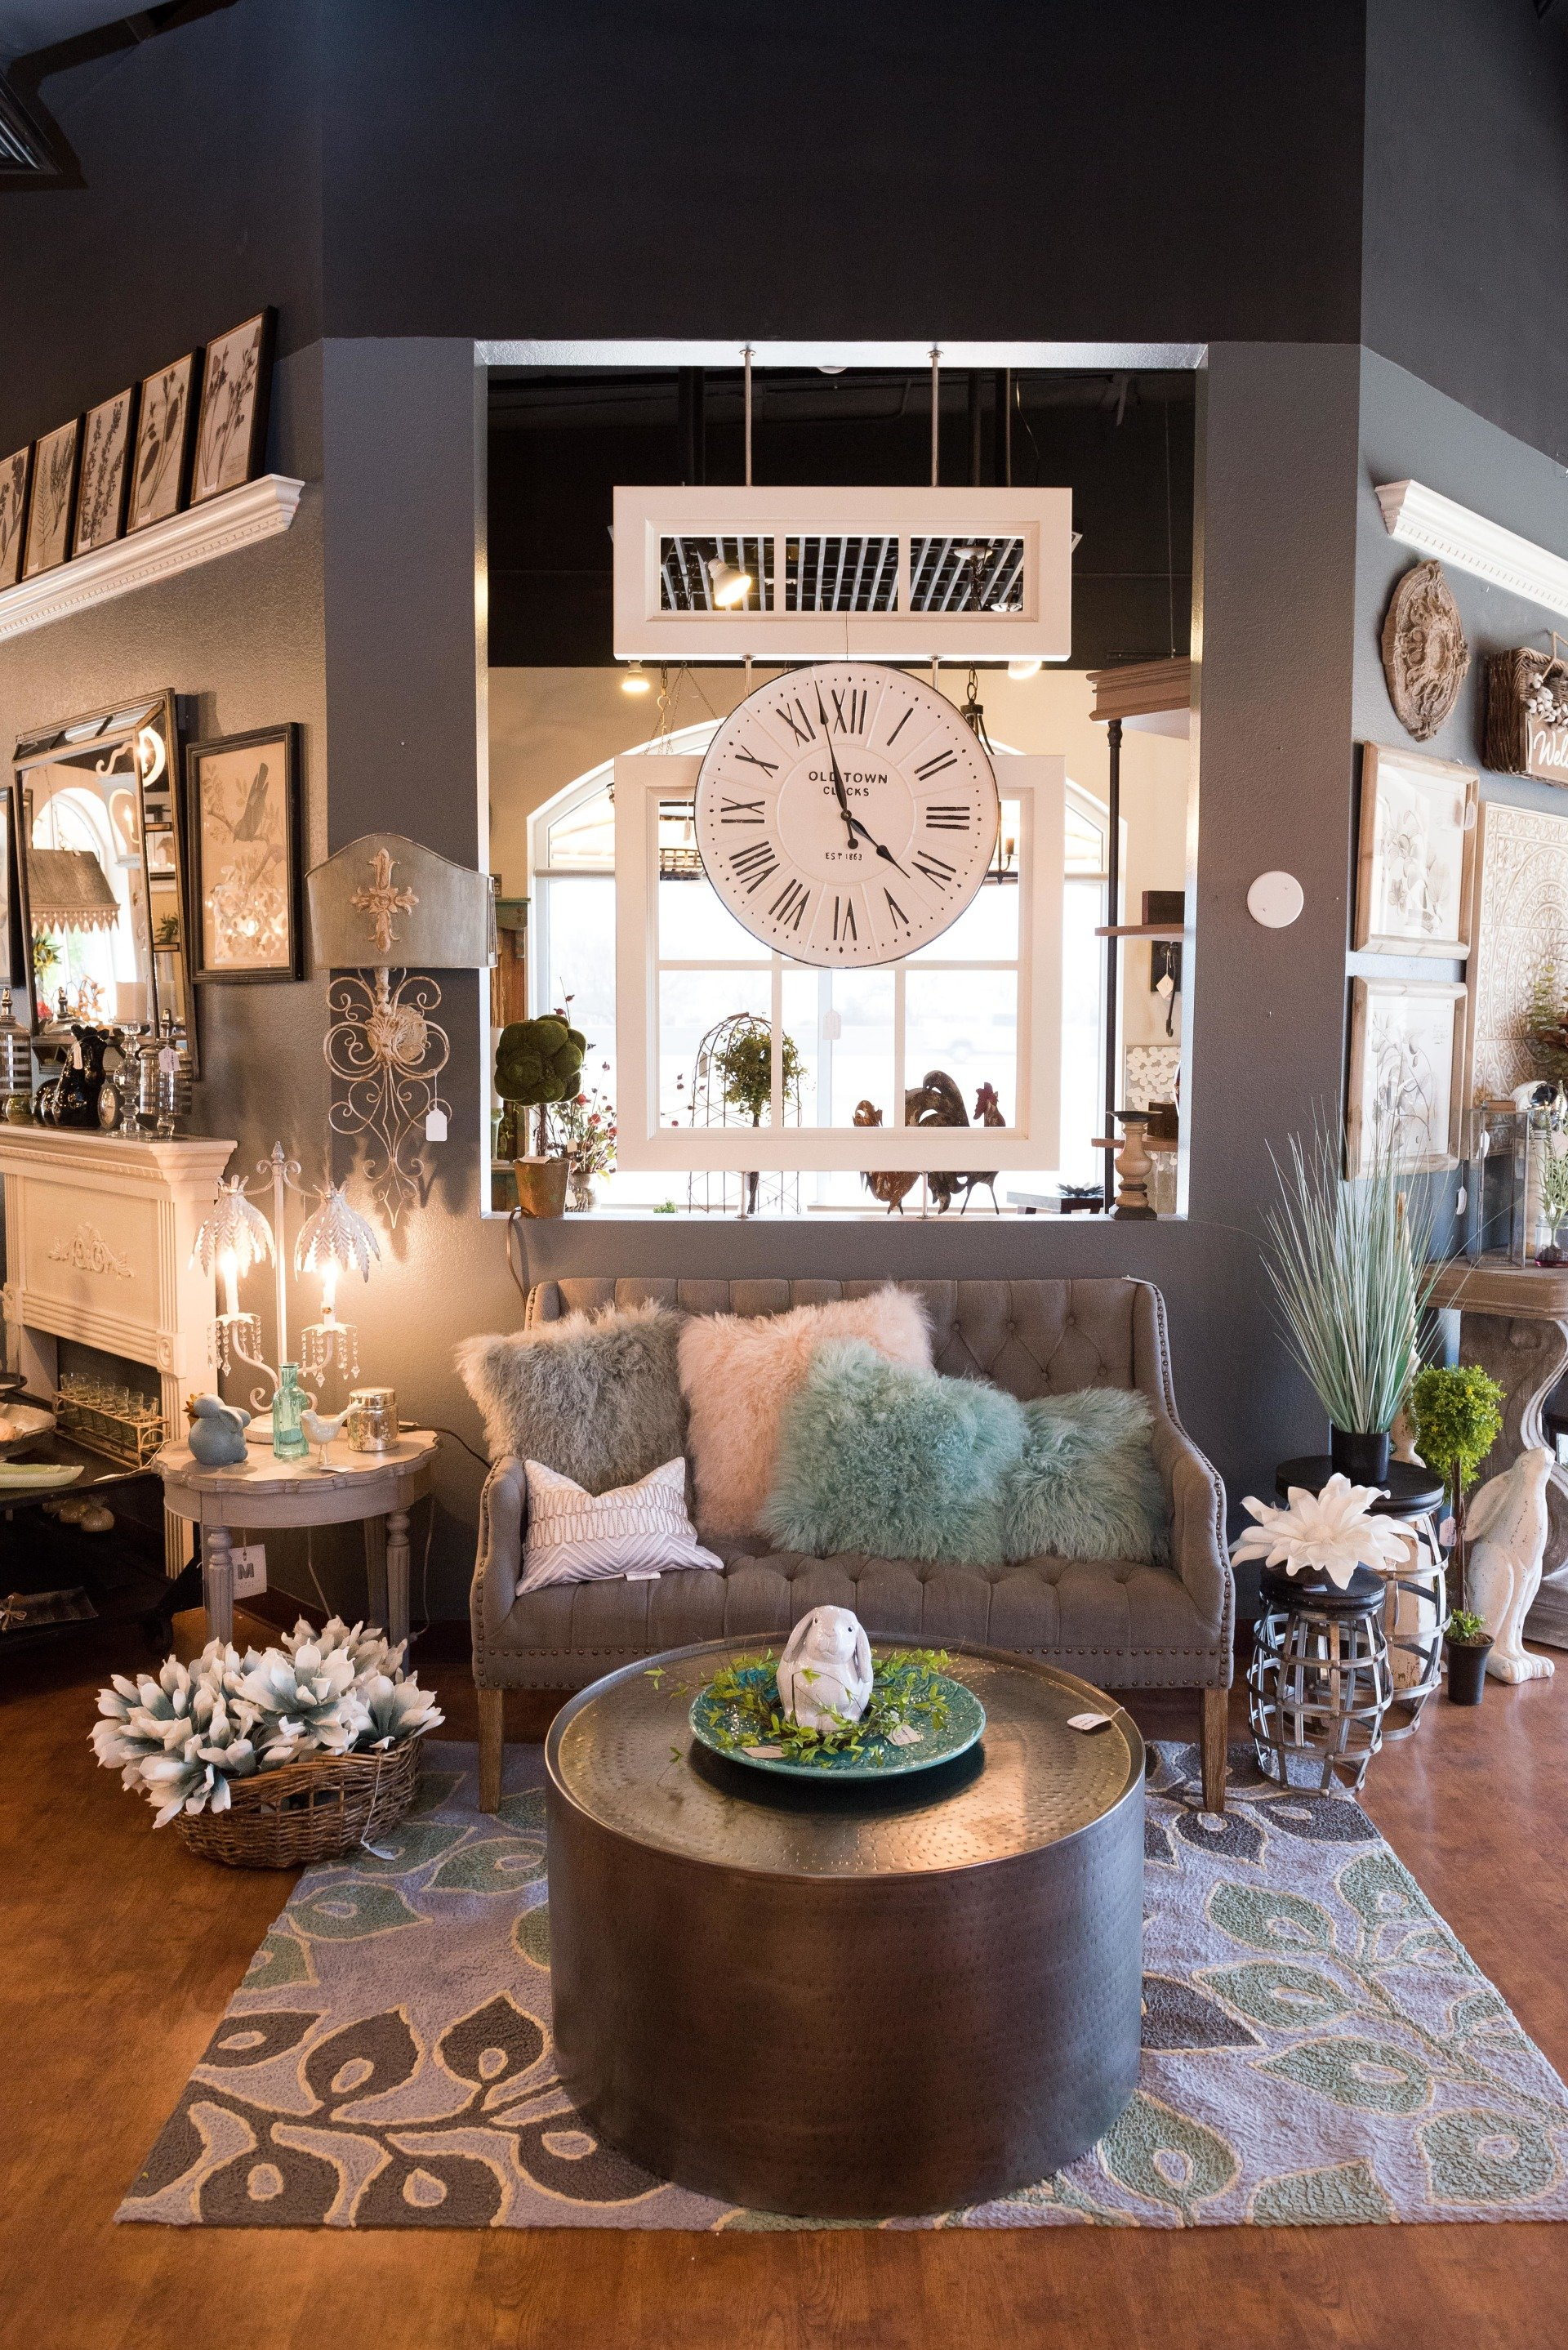 decor home exterior schemes country living bhg beautiful rustic and room house elegant hill homes of decorating orange color lovely texas